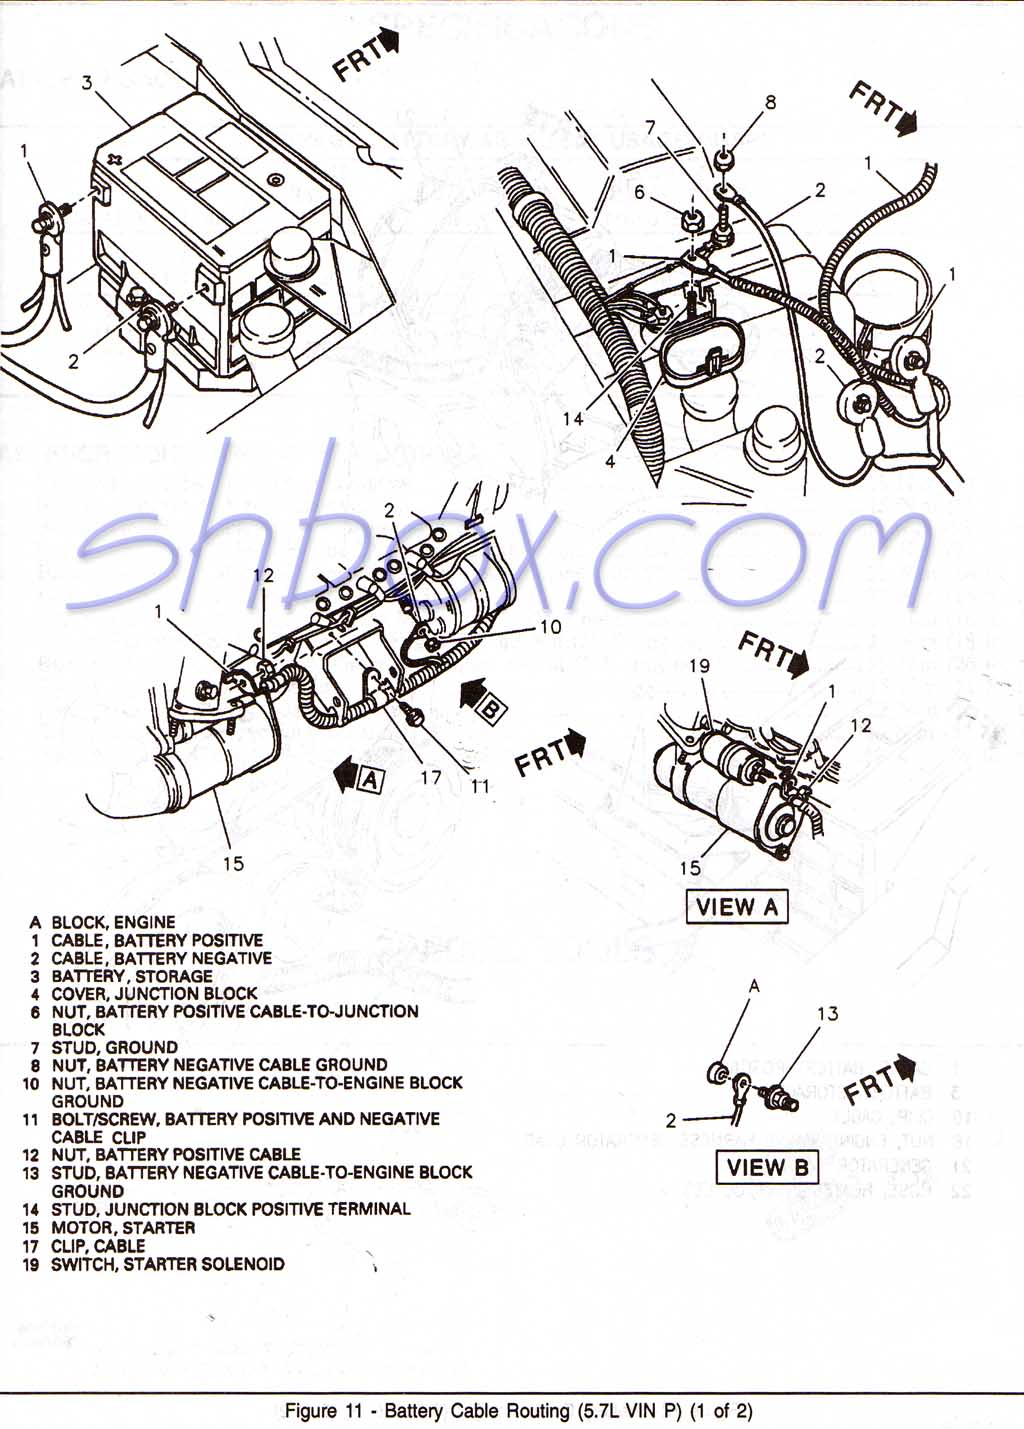 1994 Camaro Stereo Wiring Diagram Library 1993 Jeep Grand Cherokee Battery Cable Routing View 1